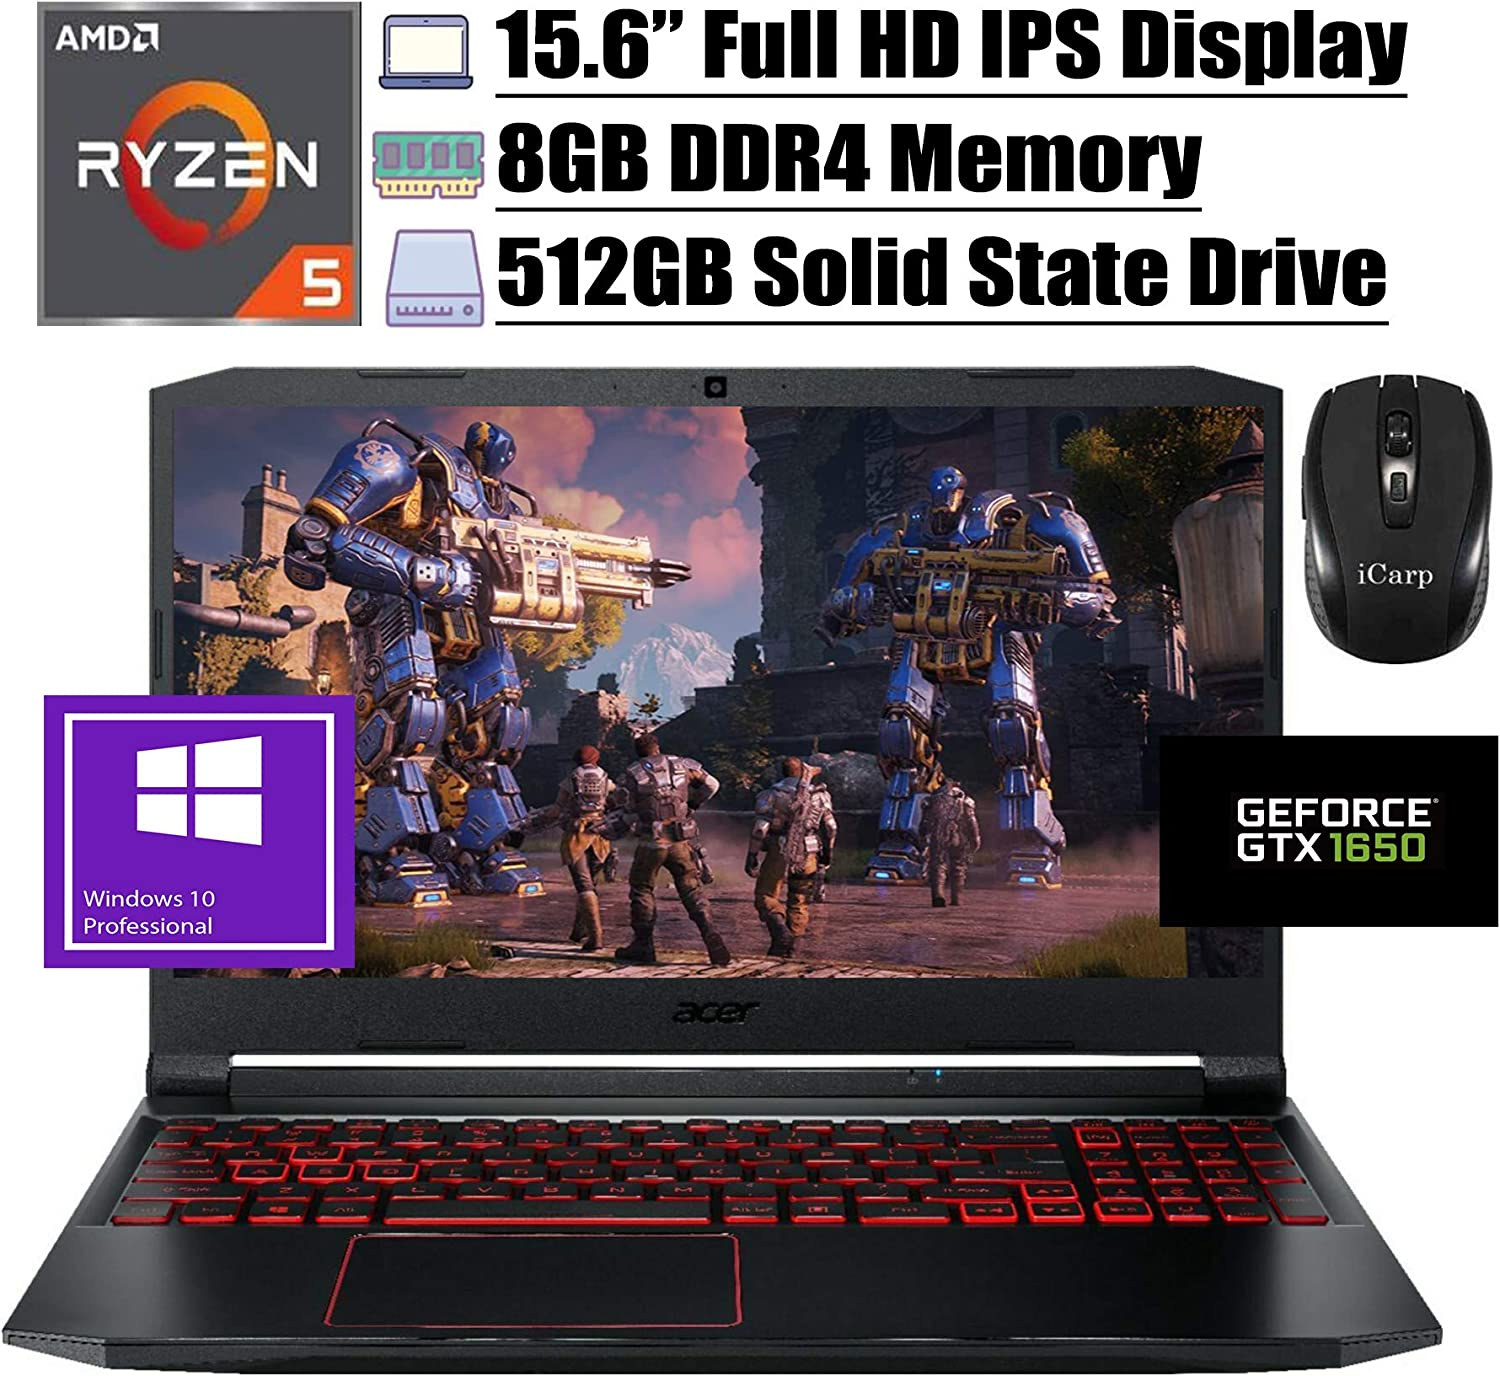 "2020 Flagship Acer Nitro 5 15 Gaming Laptop 15.6"" Full HD IPS Display AMD Hexa-Core Ryzen 5 4600H (Beats i7-9750H) 8GB DDR4 512GB SSD 4GB GTX 1650 Backlit WiFi HDMI Win 10 Pro + iCarp Wireless Mouse"